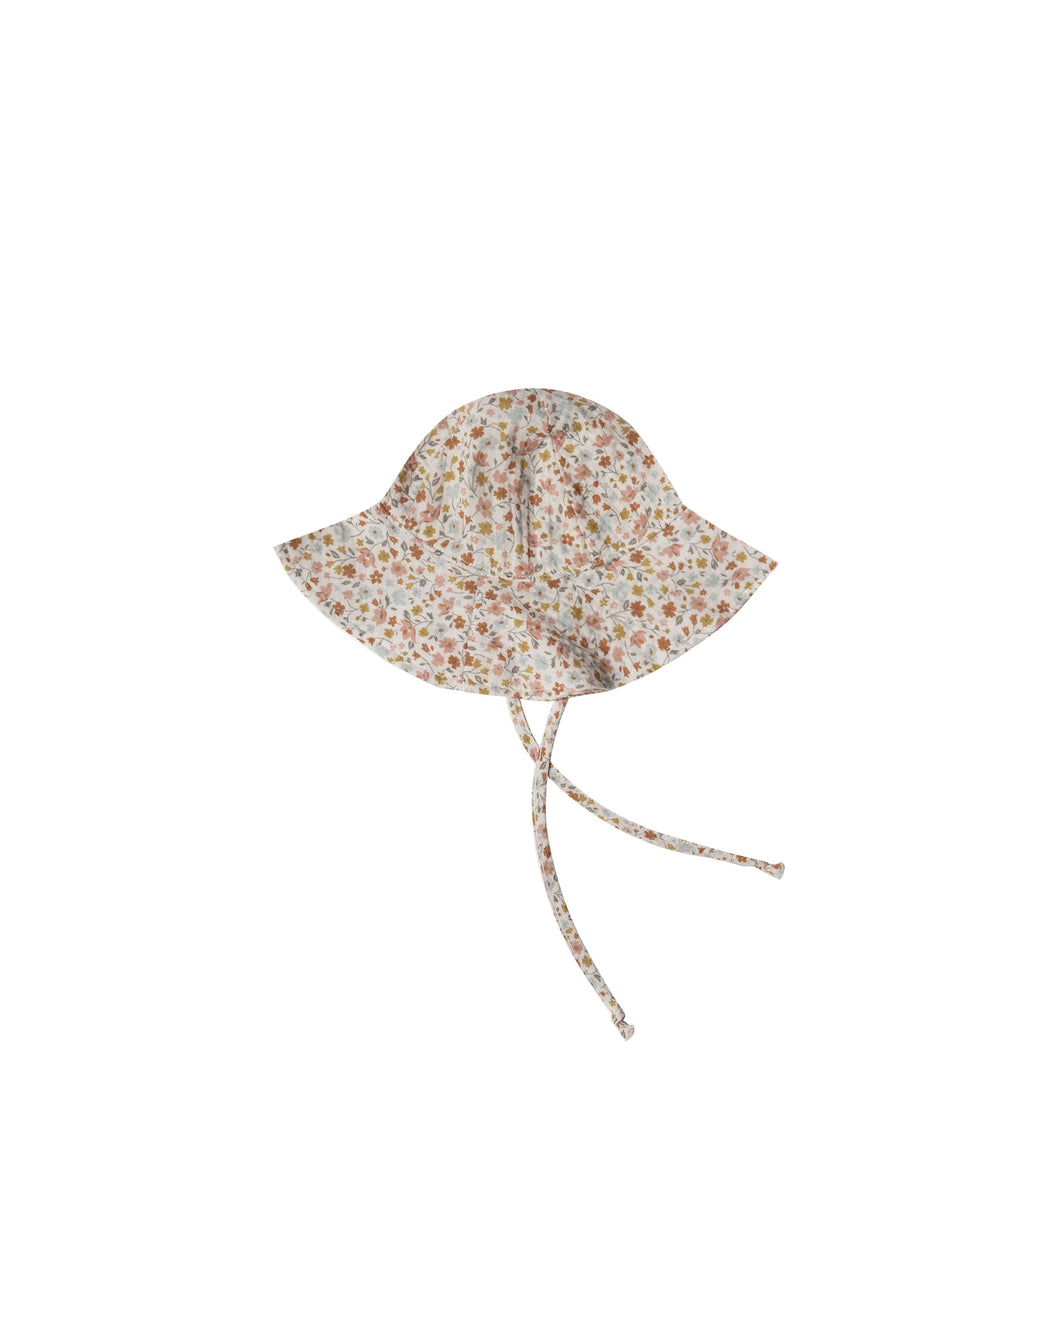 Floppy Sun Hat in Flower Fields - WildLittleFawns